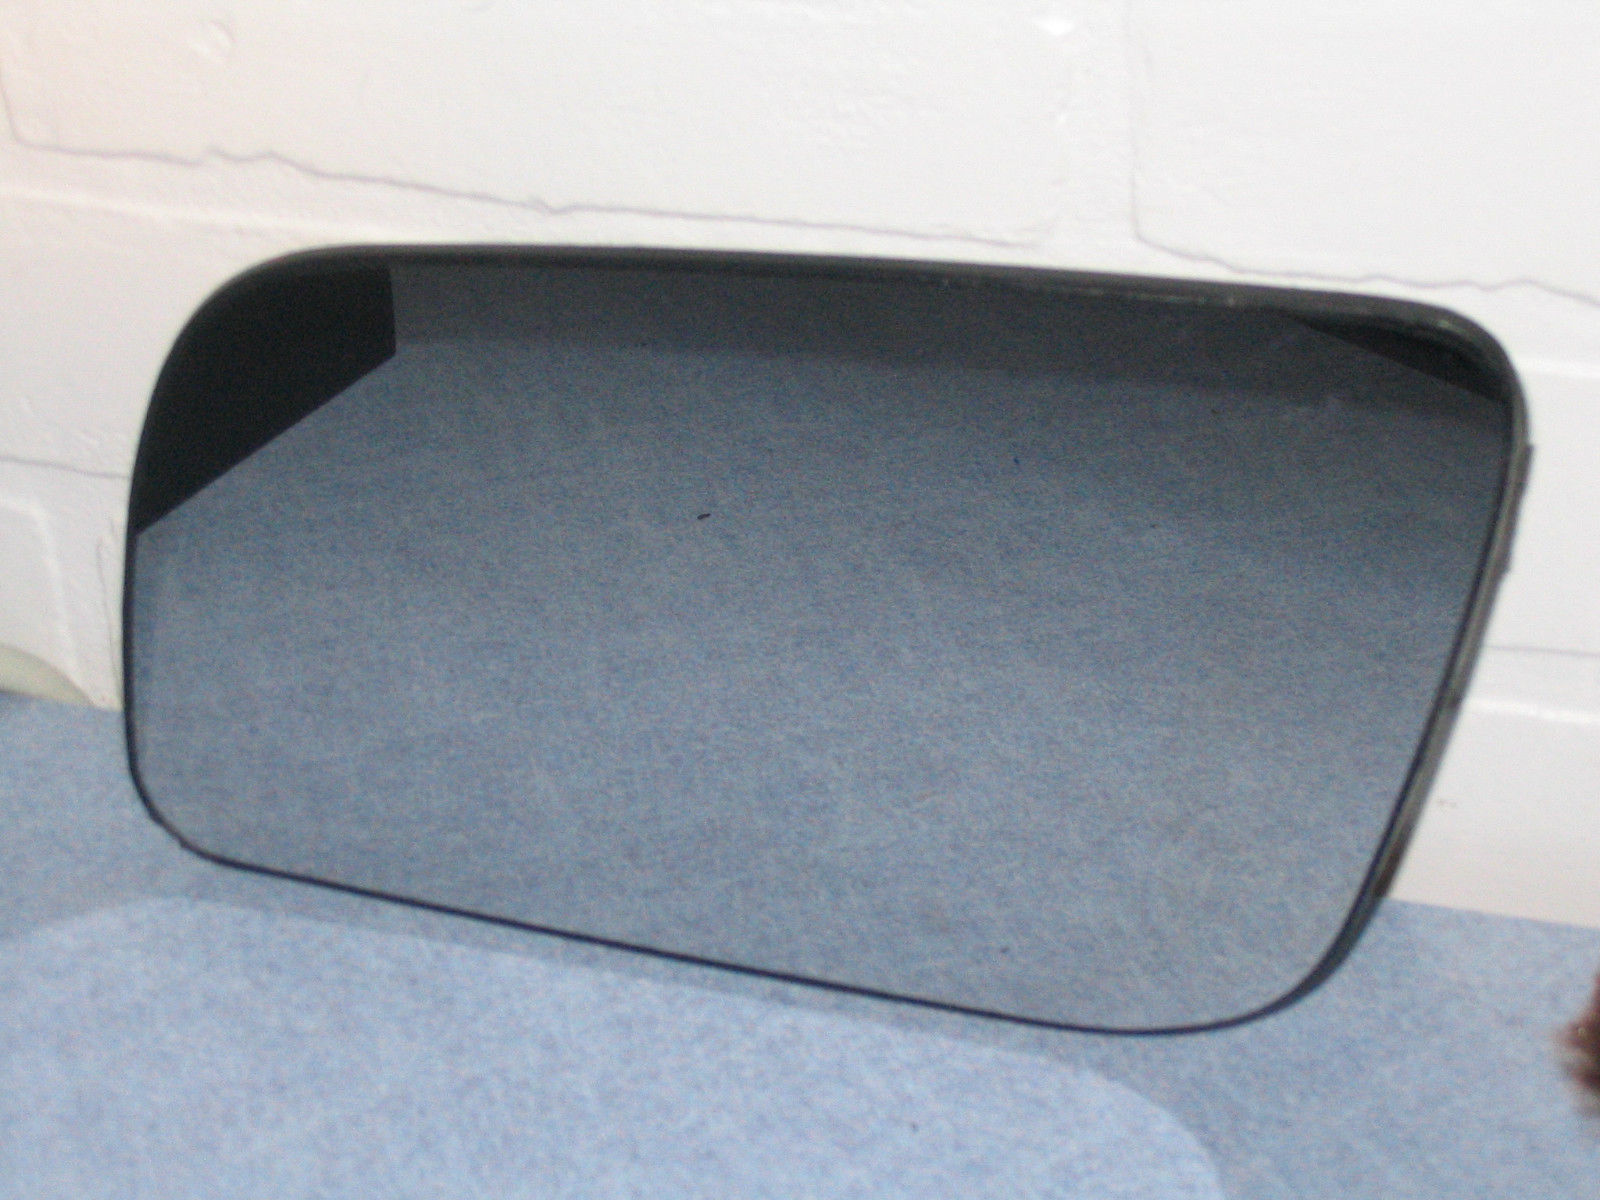 1988-99 Chevrolet GMC truck Genuine GM original power mirror glass with backing  Does not apply